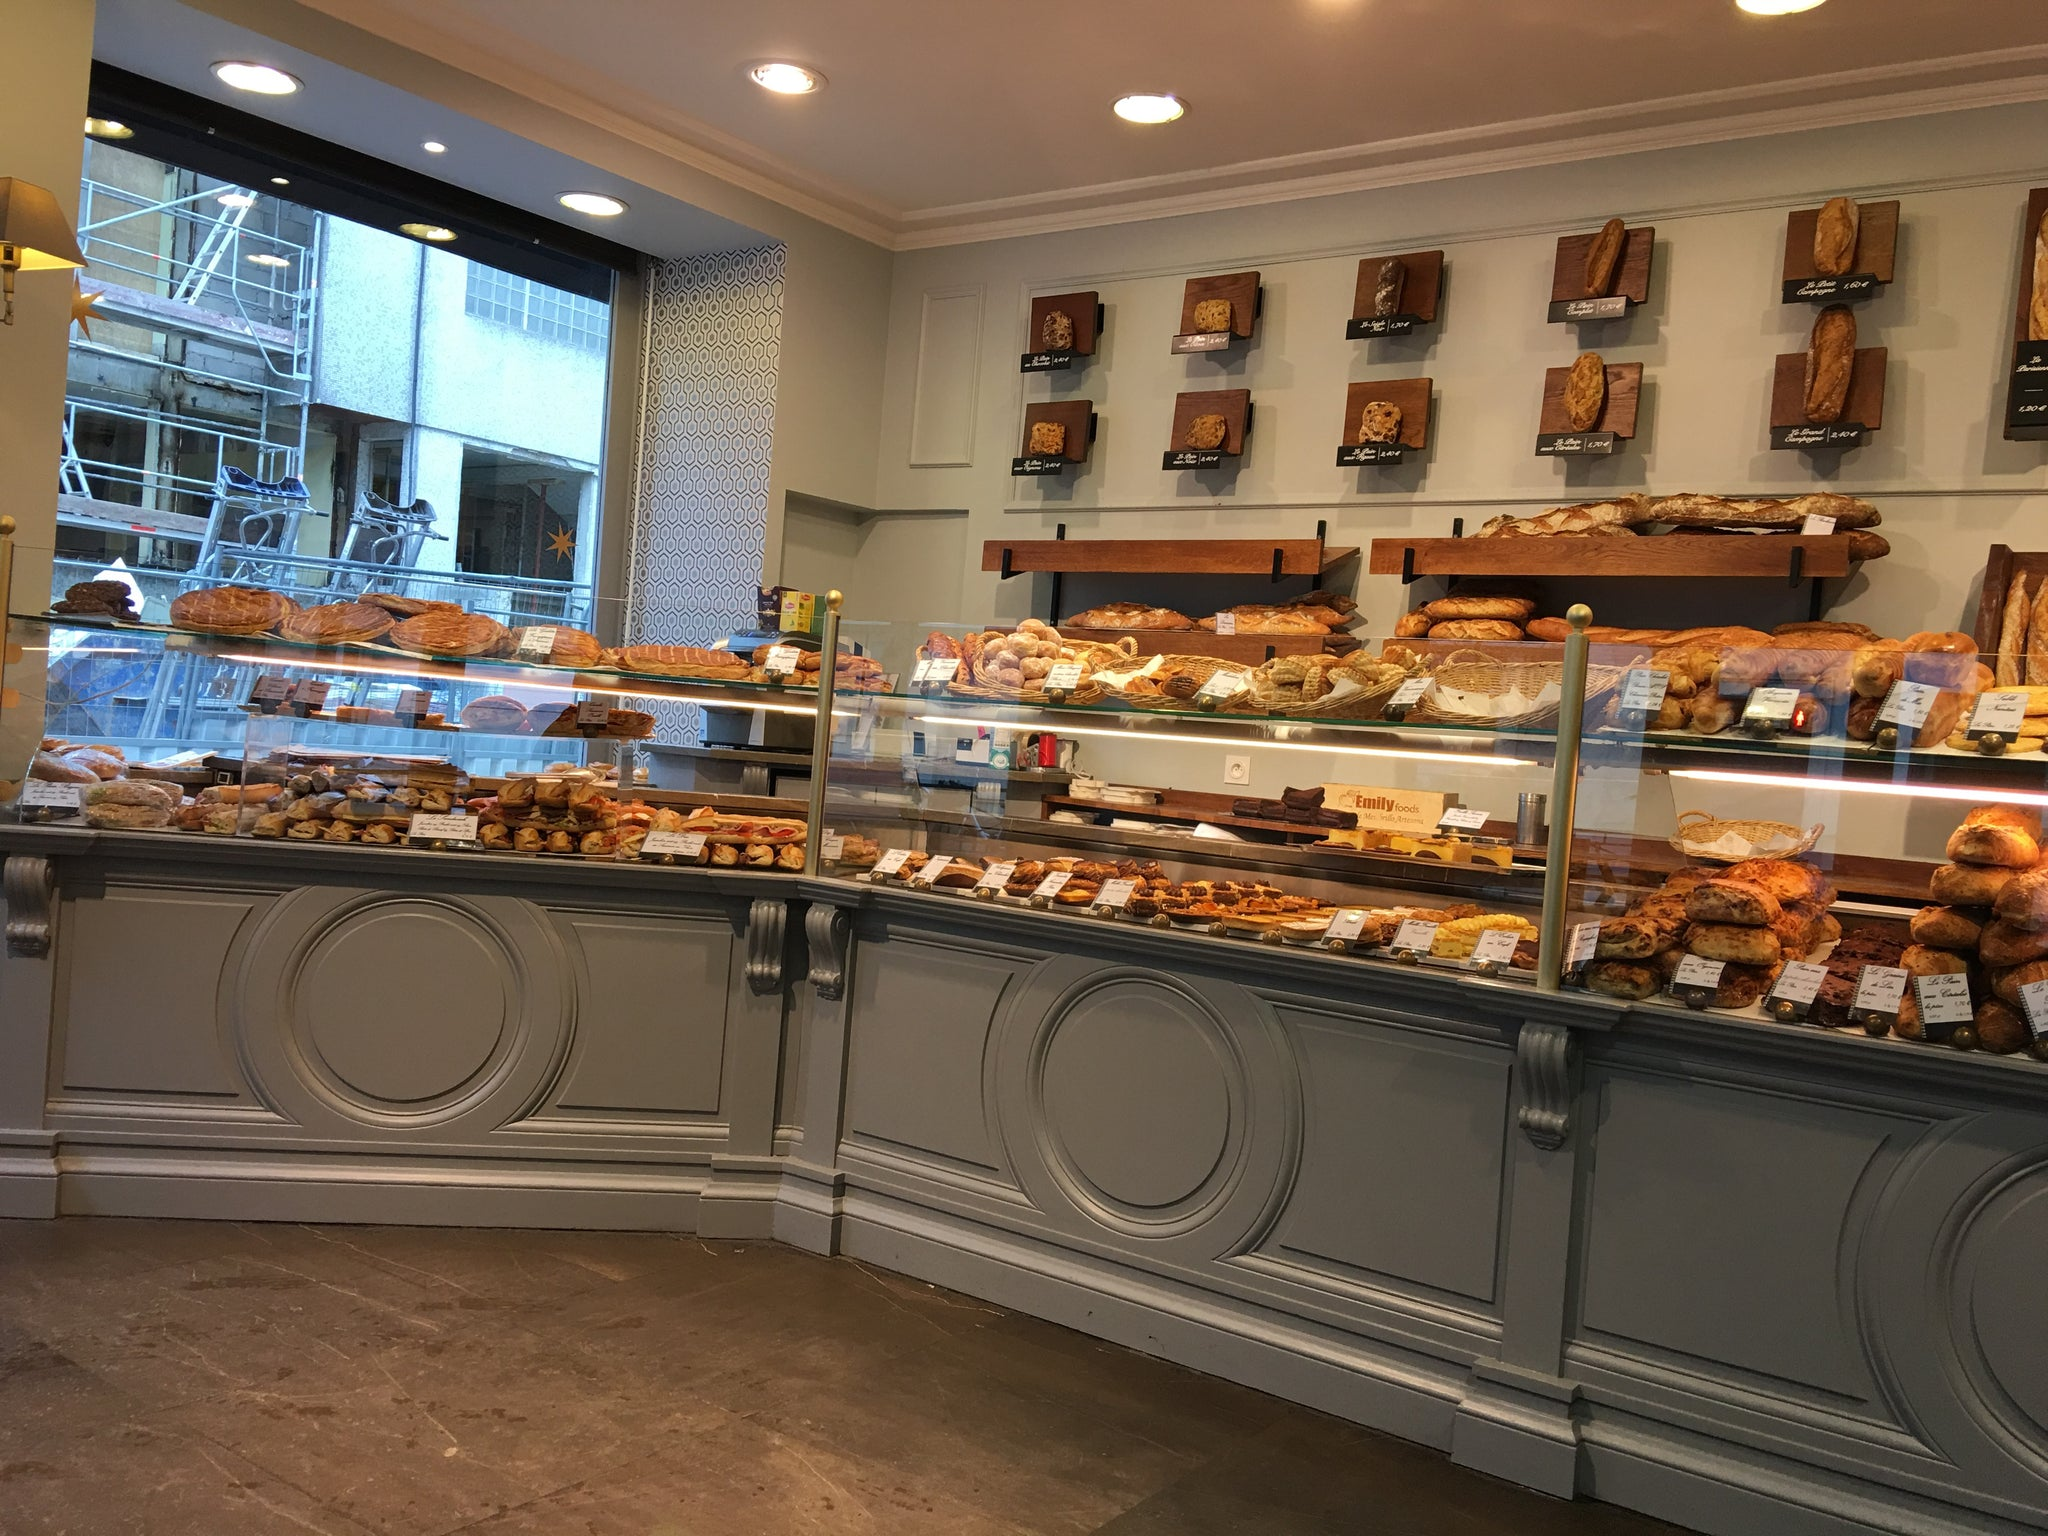 The same boulangerie I visit every time I'm in Paris. They renovated this year and it looks gorgeous.